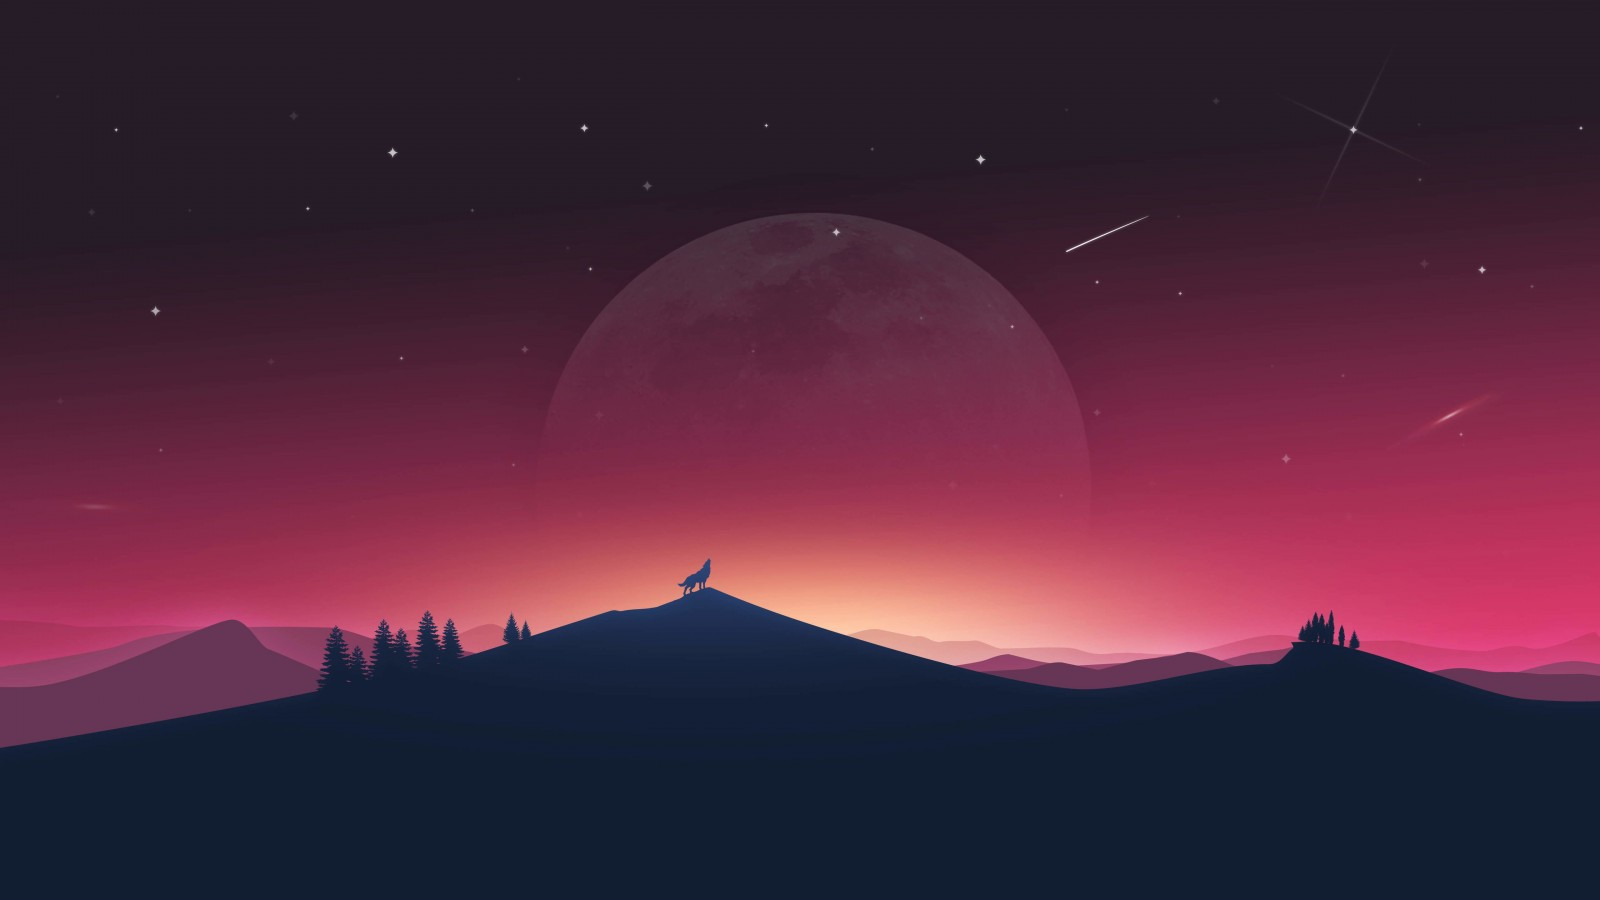 Wolf Howling At The Moon Wallpaper for Desktop 1600x900